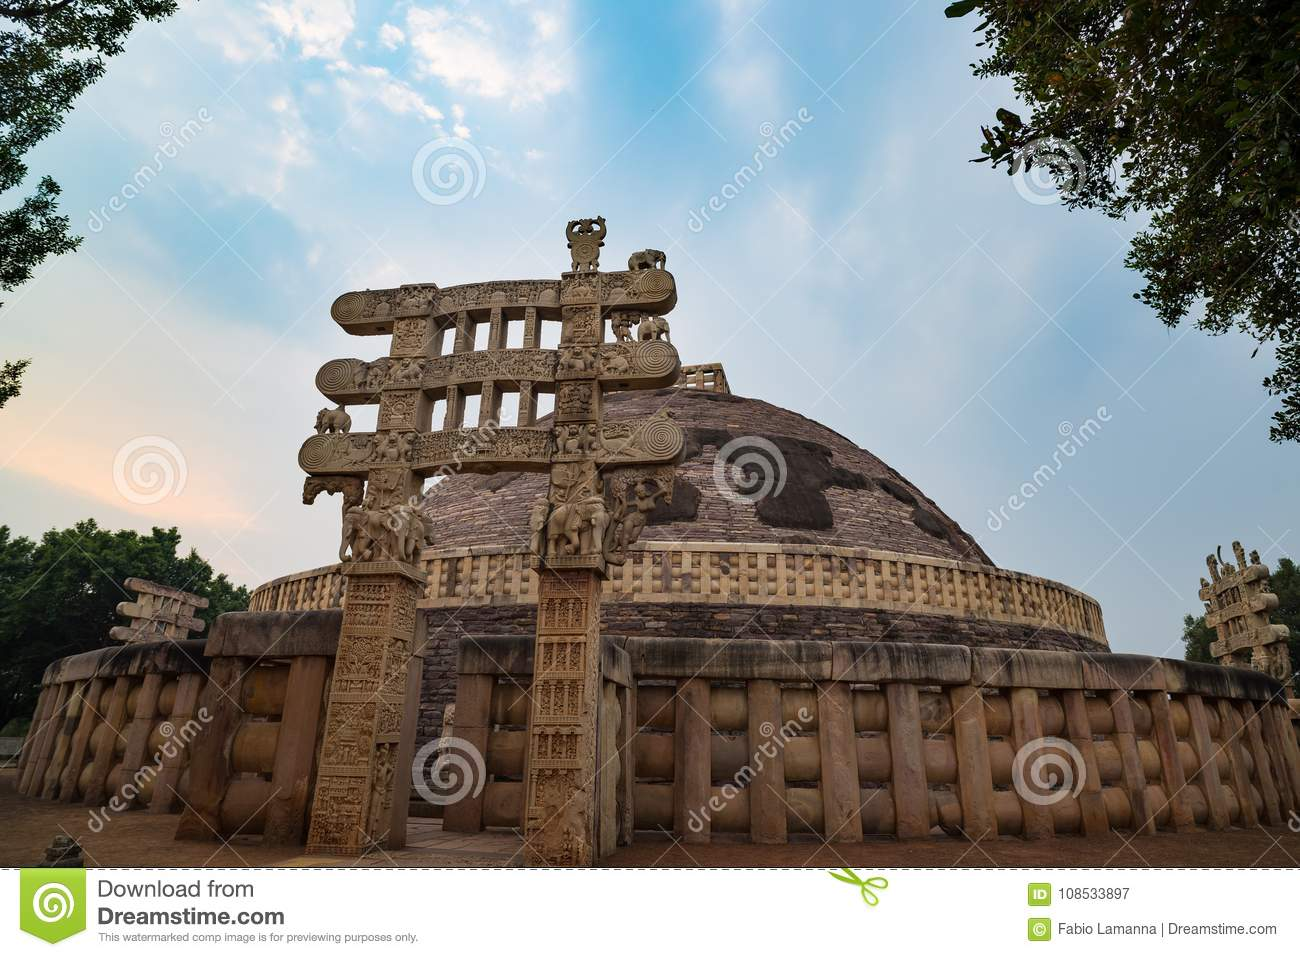 Sanchi Stupa, Ancient buddhist building, religion mystery, carved stone. Travel destination in Madhya Pradesh, India.